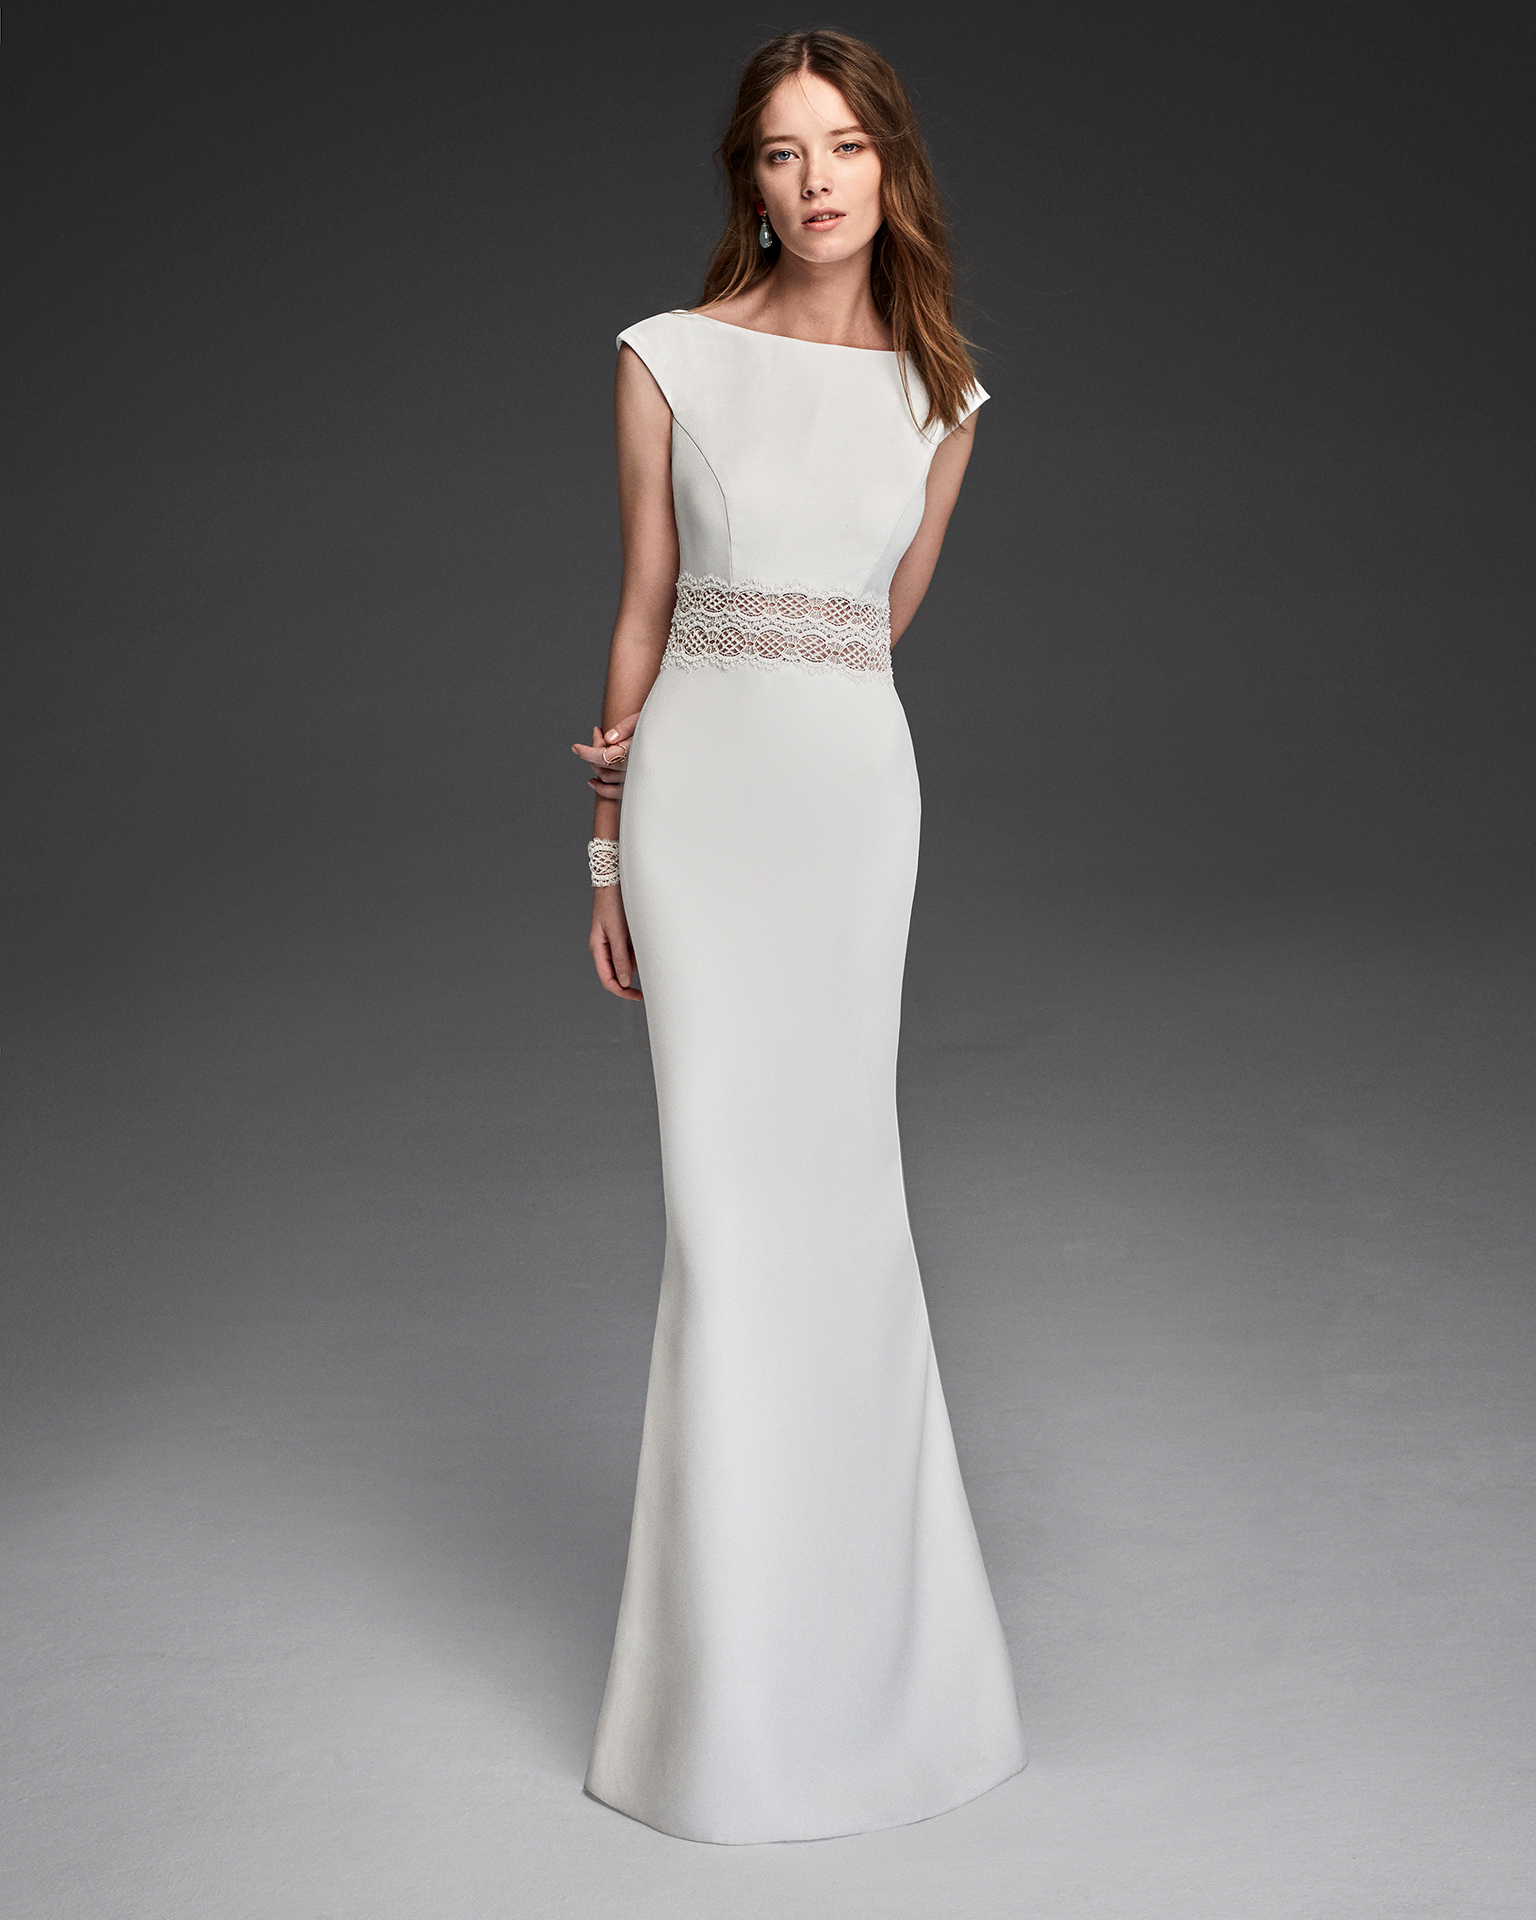 Boho-style crepe and guipure lace wedding dress with short sleeves and low back.